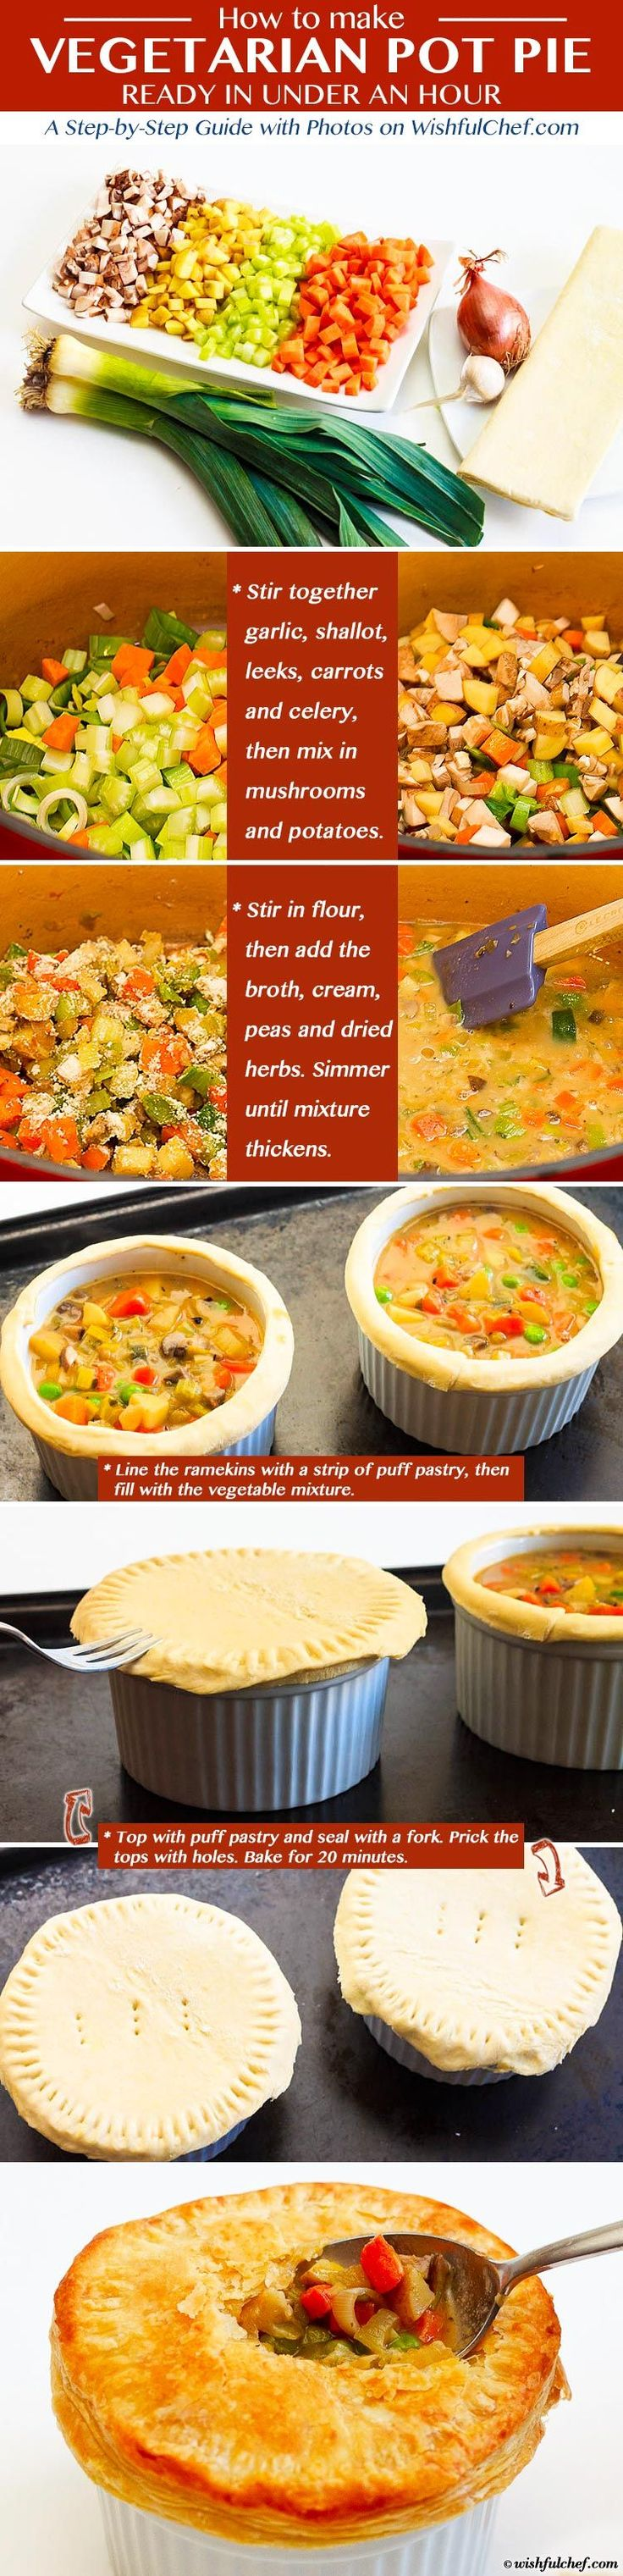 Vegetarian Pot Pie Recipe   Ready in Under an Hour- make vegan